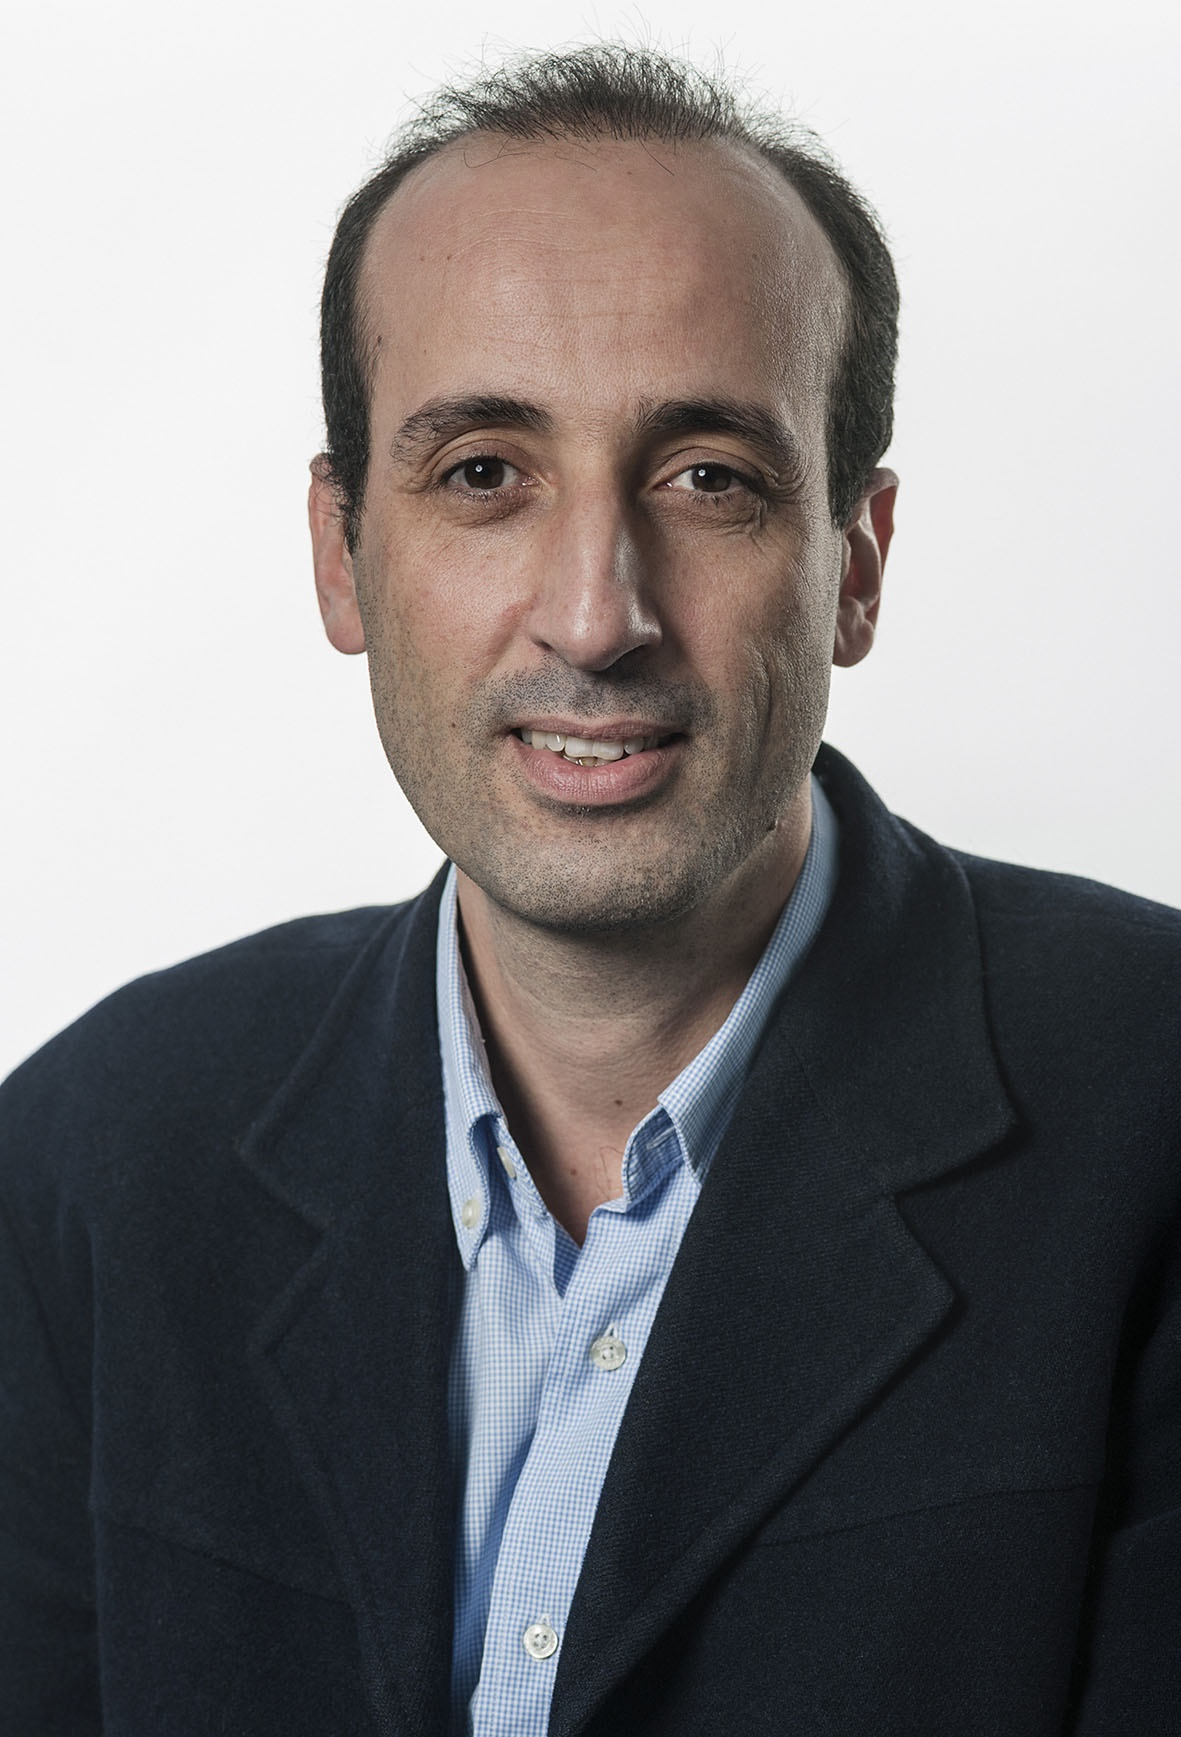 Dr. Omar Elloumi, of Nokia, and oneM2M's Technical Plenary chair